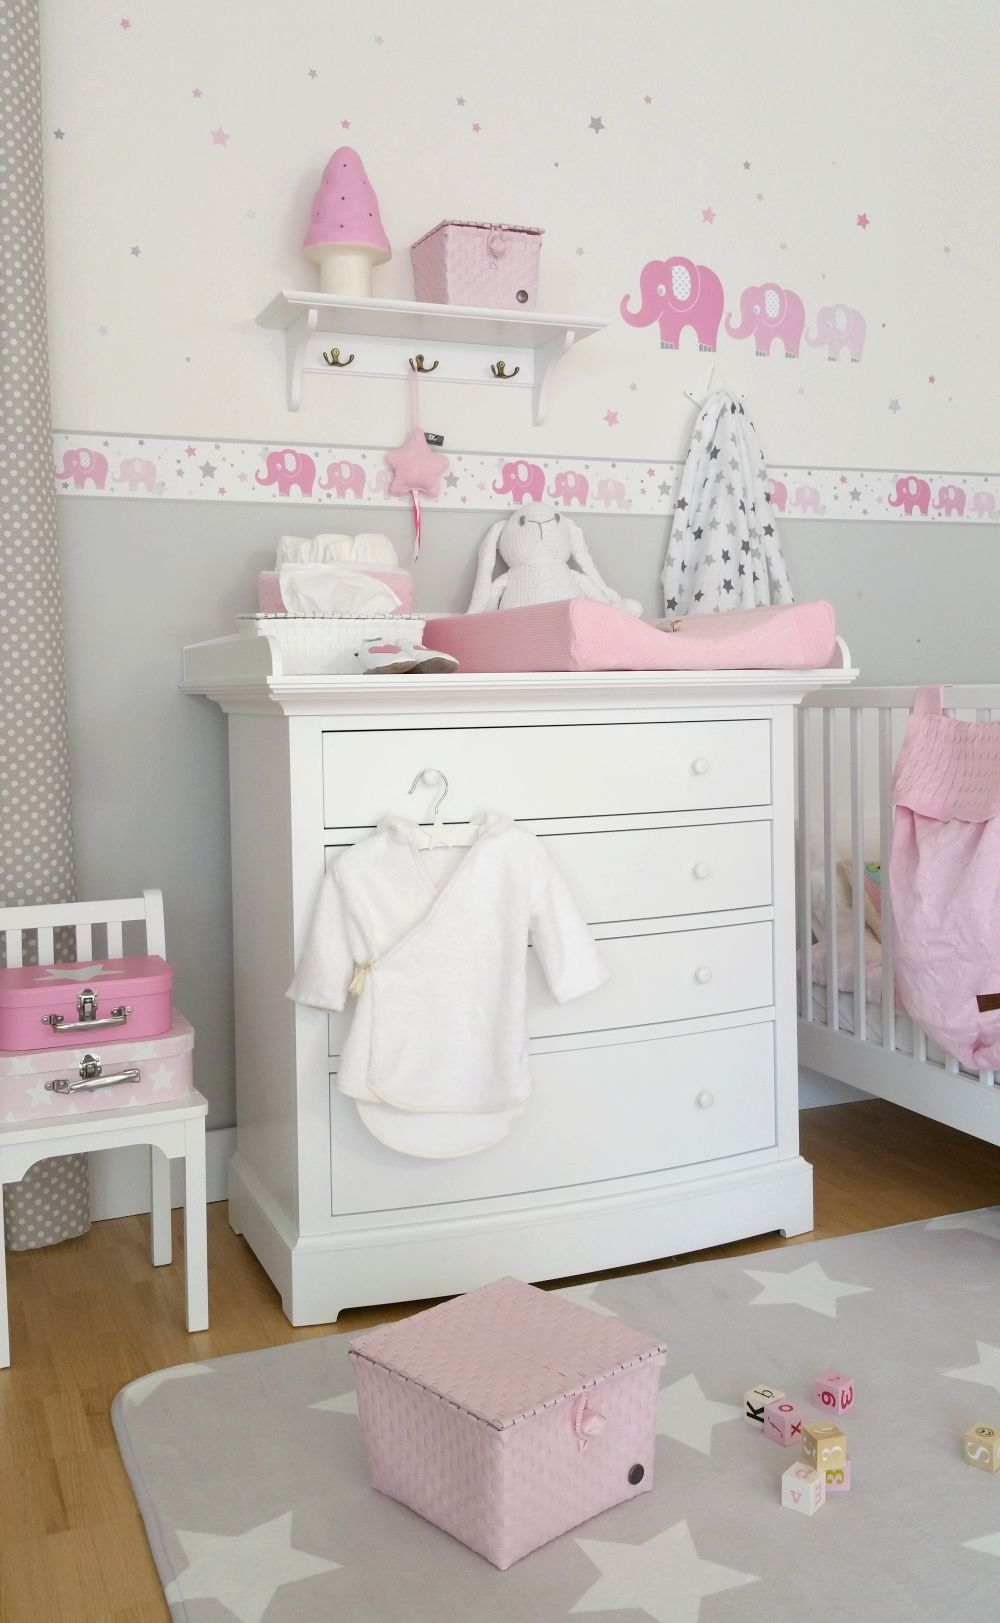 kinderzimmer bord re elefanten rosa grau selbstklebend n u r s e r y a n d k i d s r o o m. Black Bedroom Furniture Sets. Home Design Ideas